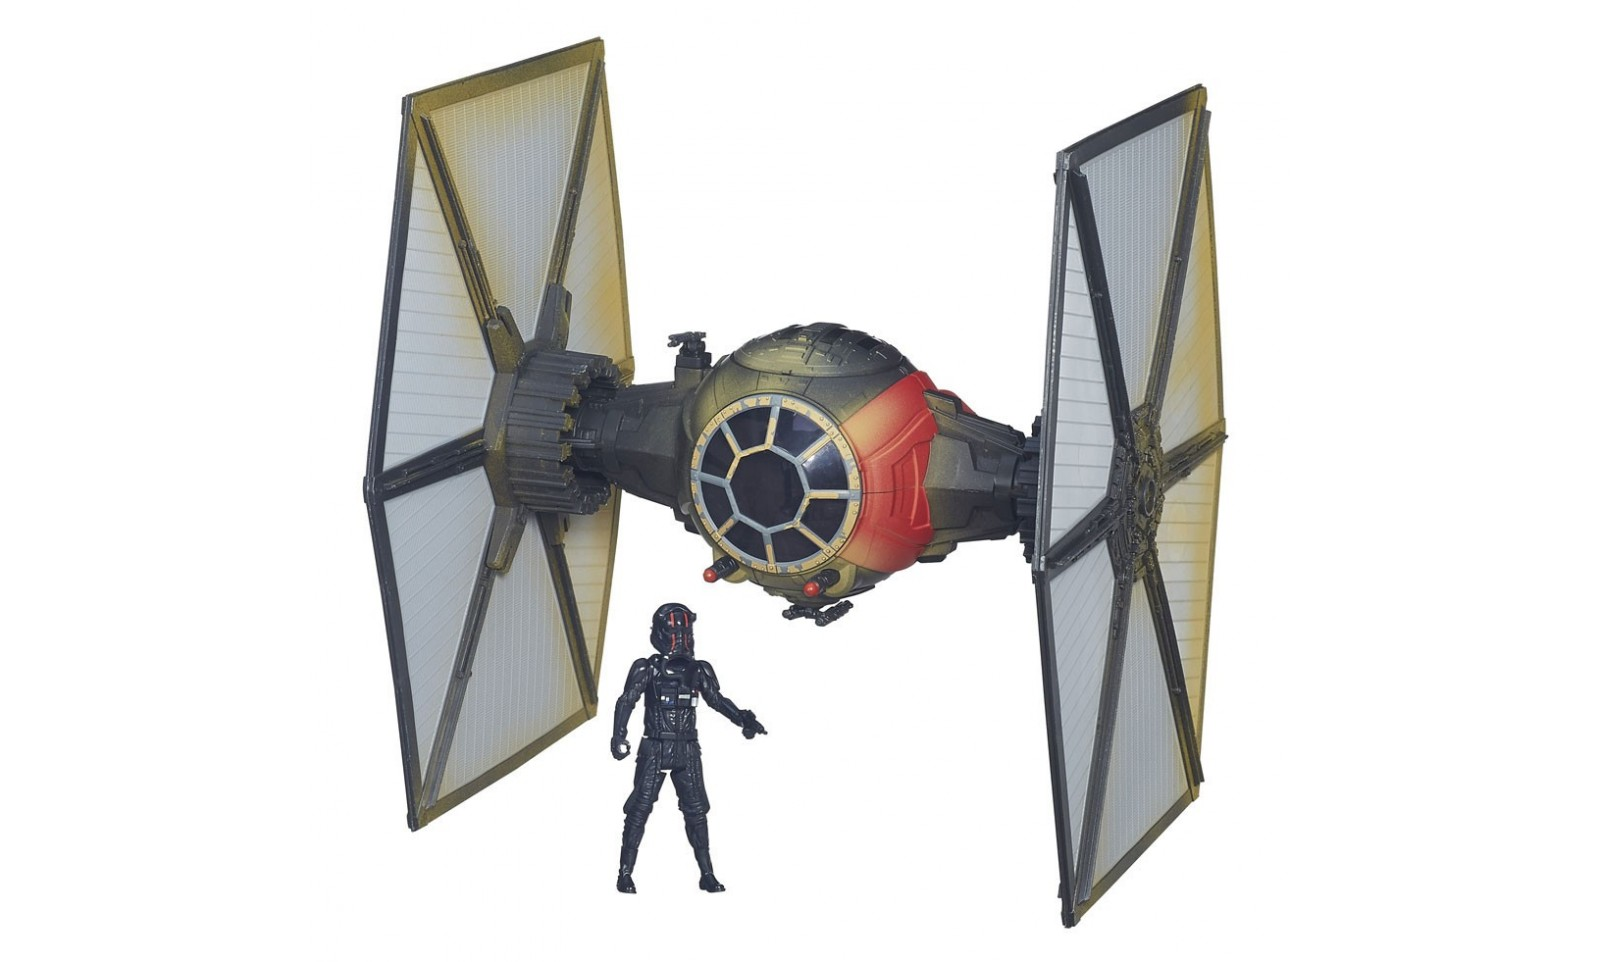 Star wars pisode vii le r veil de la force vaisseau tie fighter des forces sp ciales du - Vaisseau star wars anakin ...